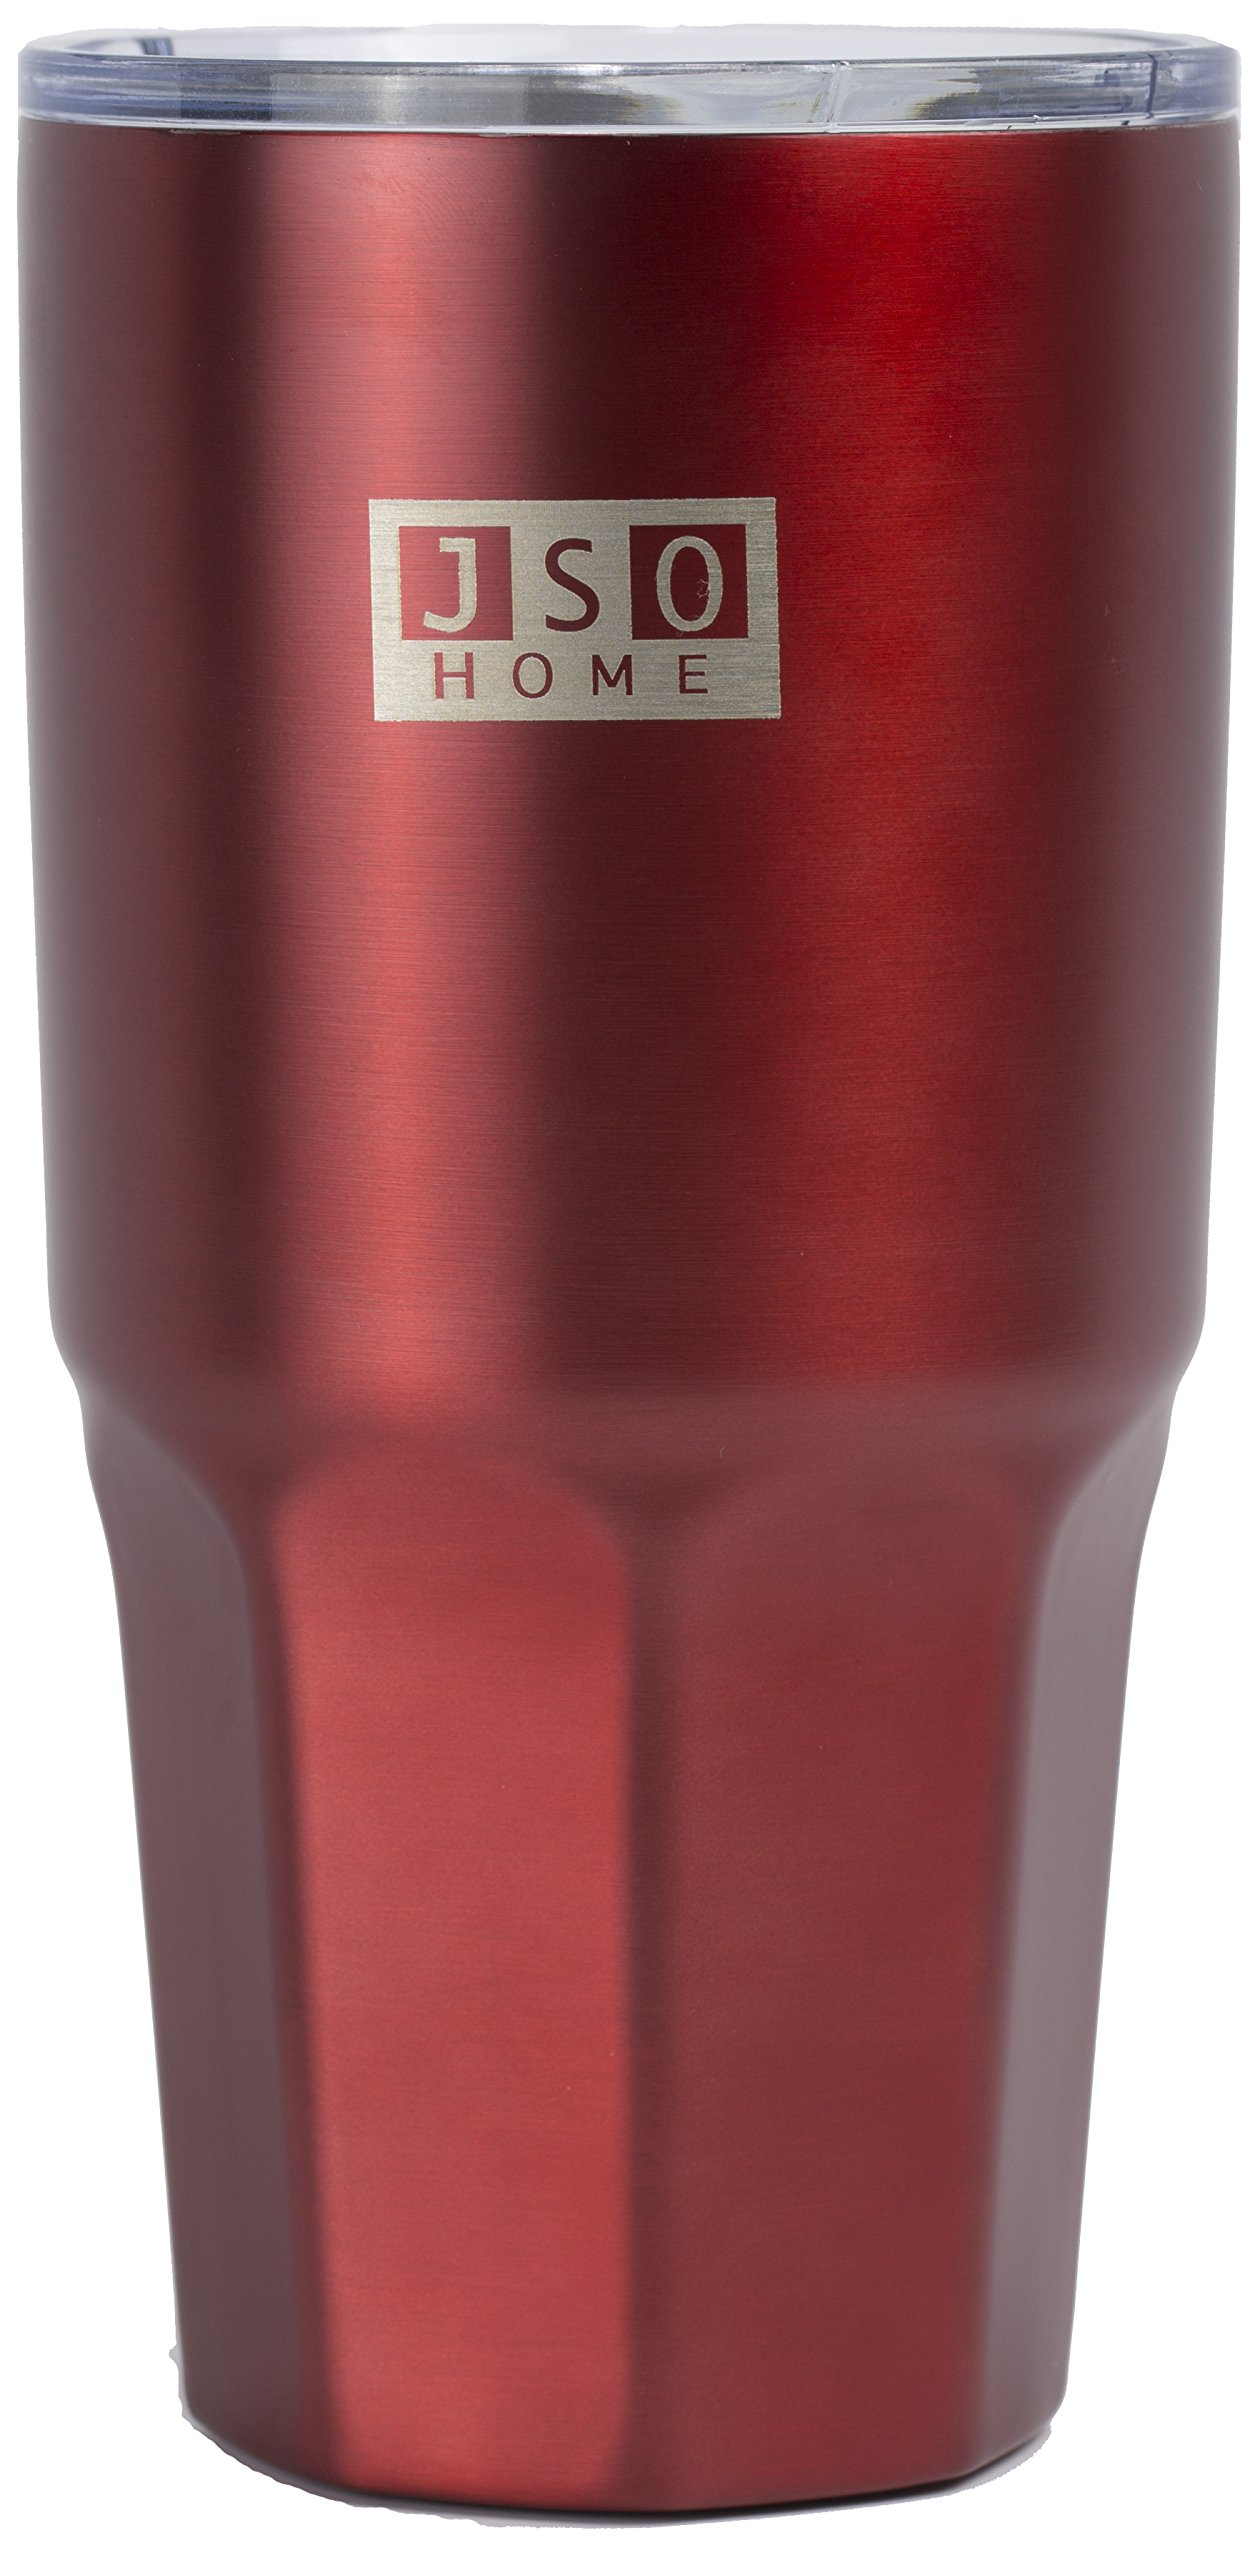 JSO Home MEGACUP 30 Ounce Hot / Cold Tumbler - 18/8 Stainless Steel - Double Wall Insulated, Condensation Free / BPA Free Travel Mug (Red)